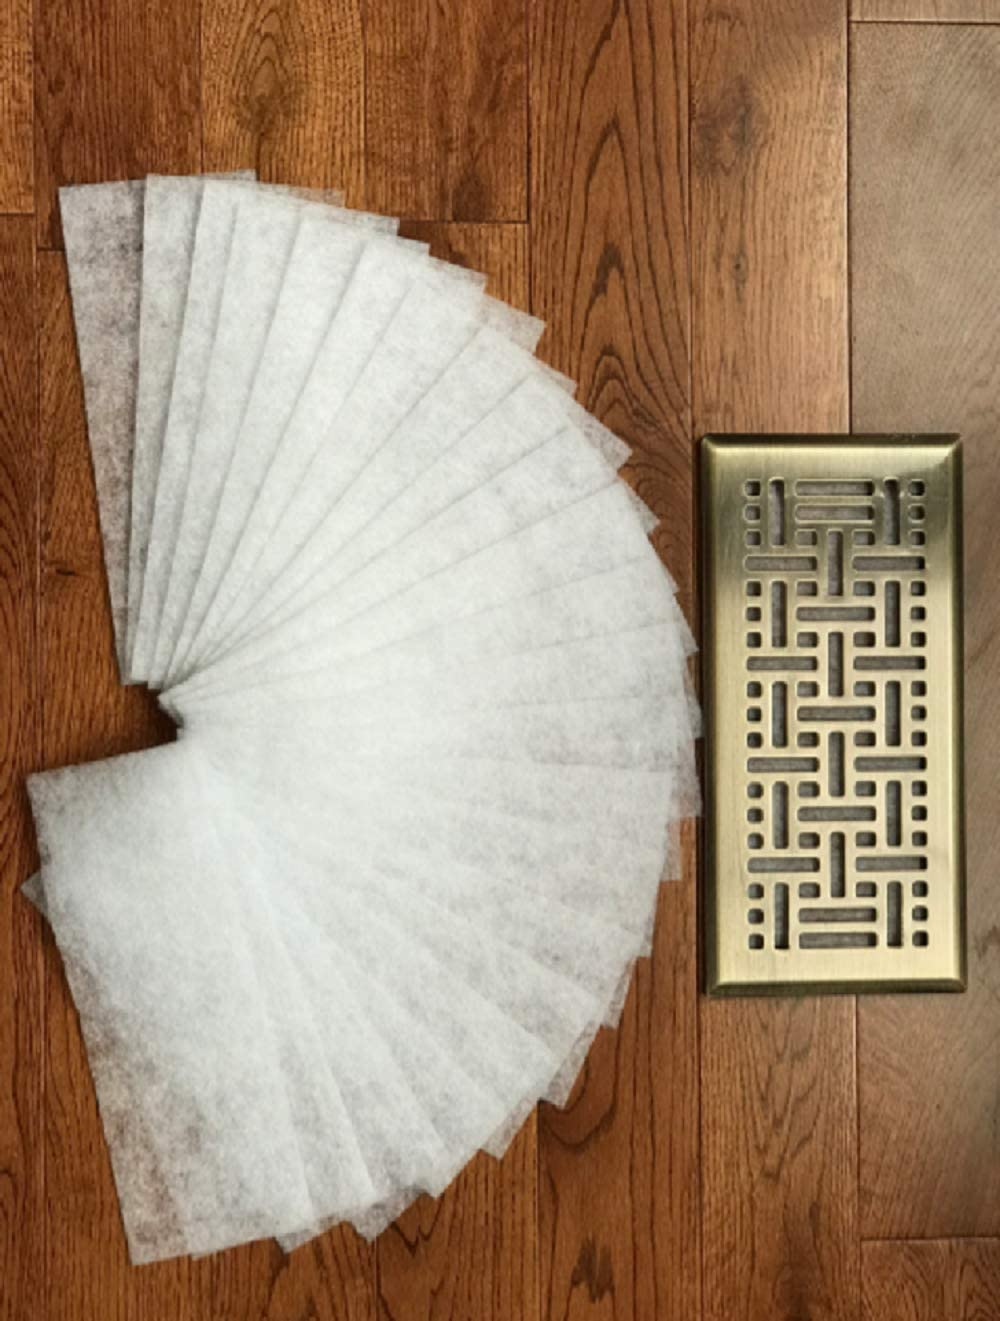 90 Day Dust Control Vent Filters Pack of 24